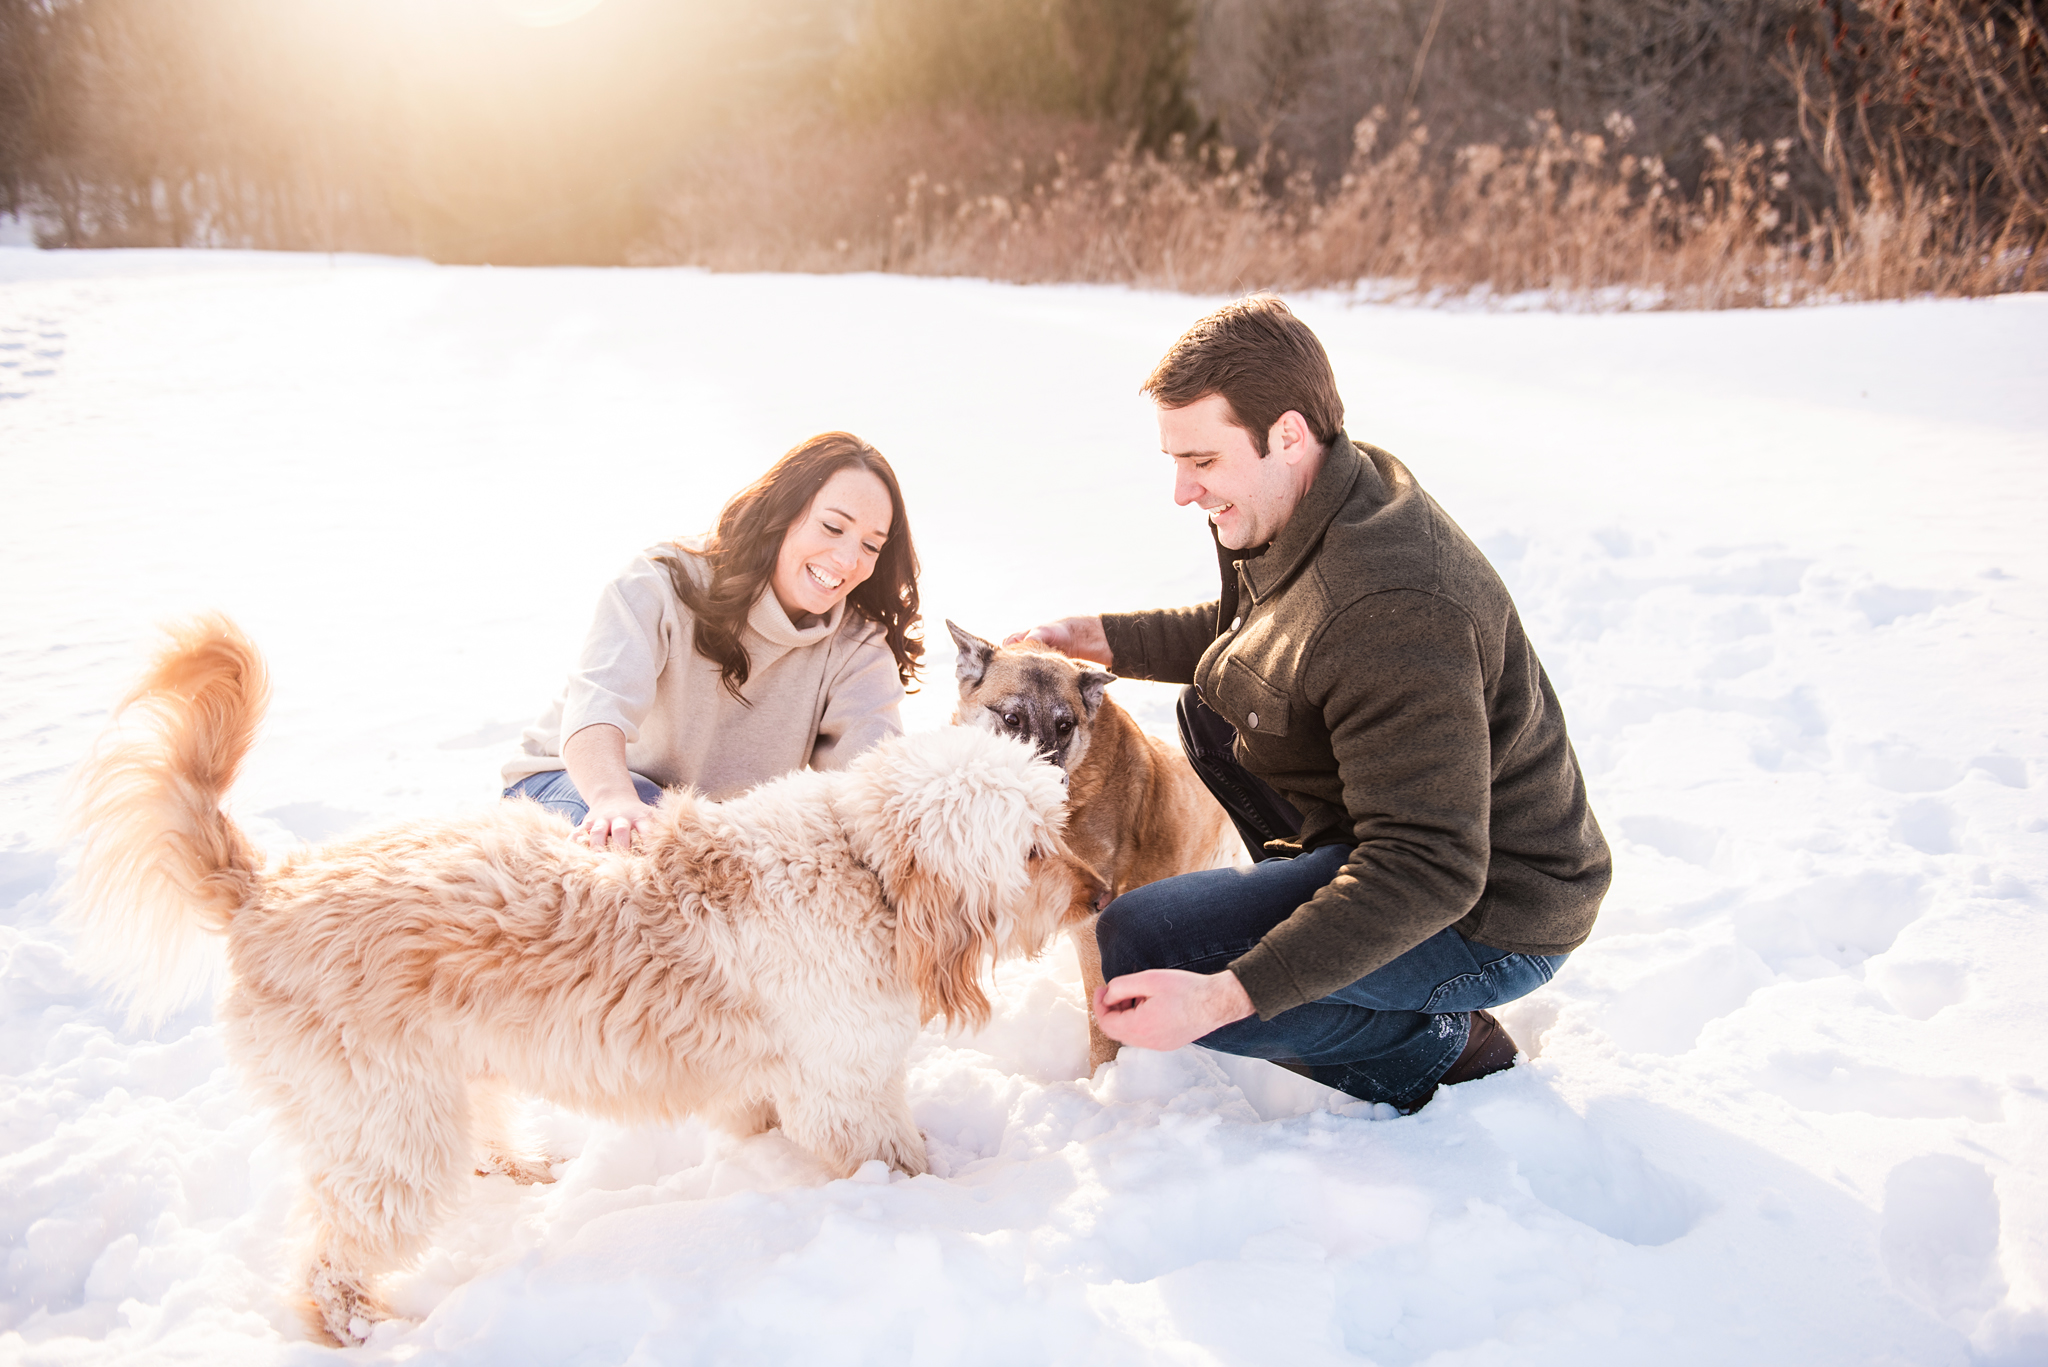 Fallbrook_Central_NY_Engagement_Session_JILL_STUDIO_Rochester_NY_Photographer_DSC_4883.jpg